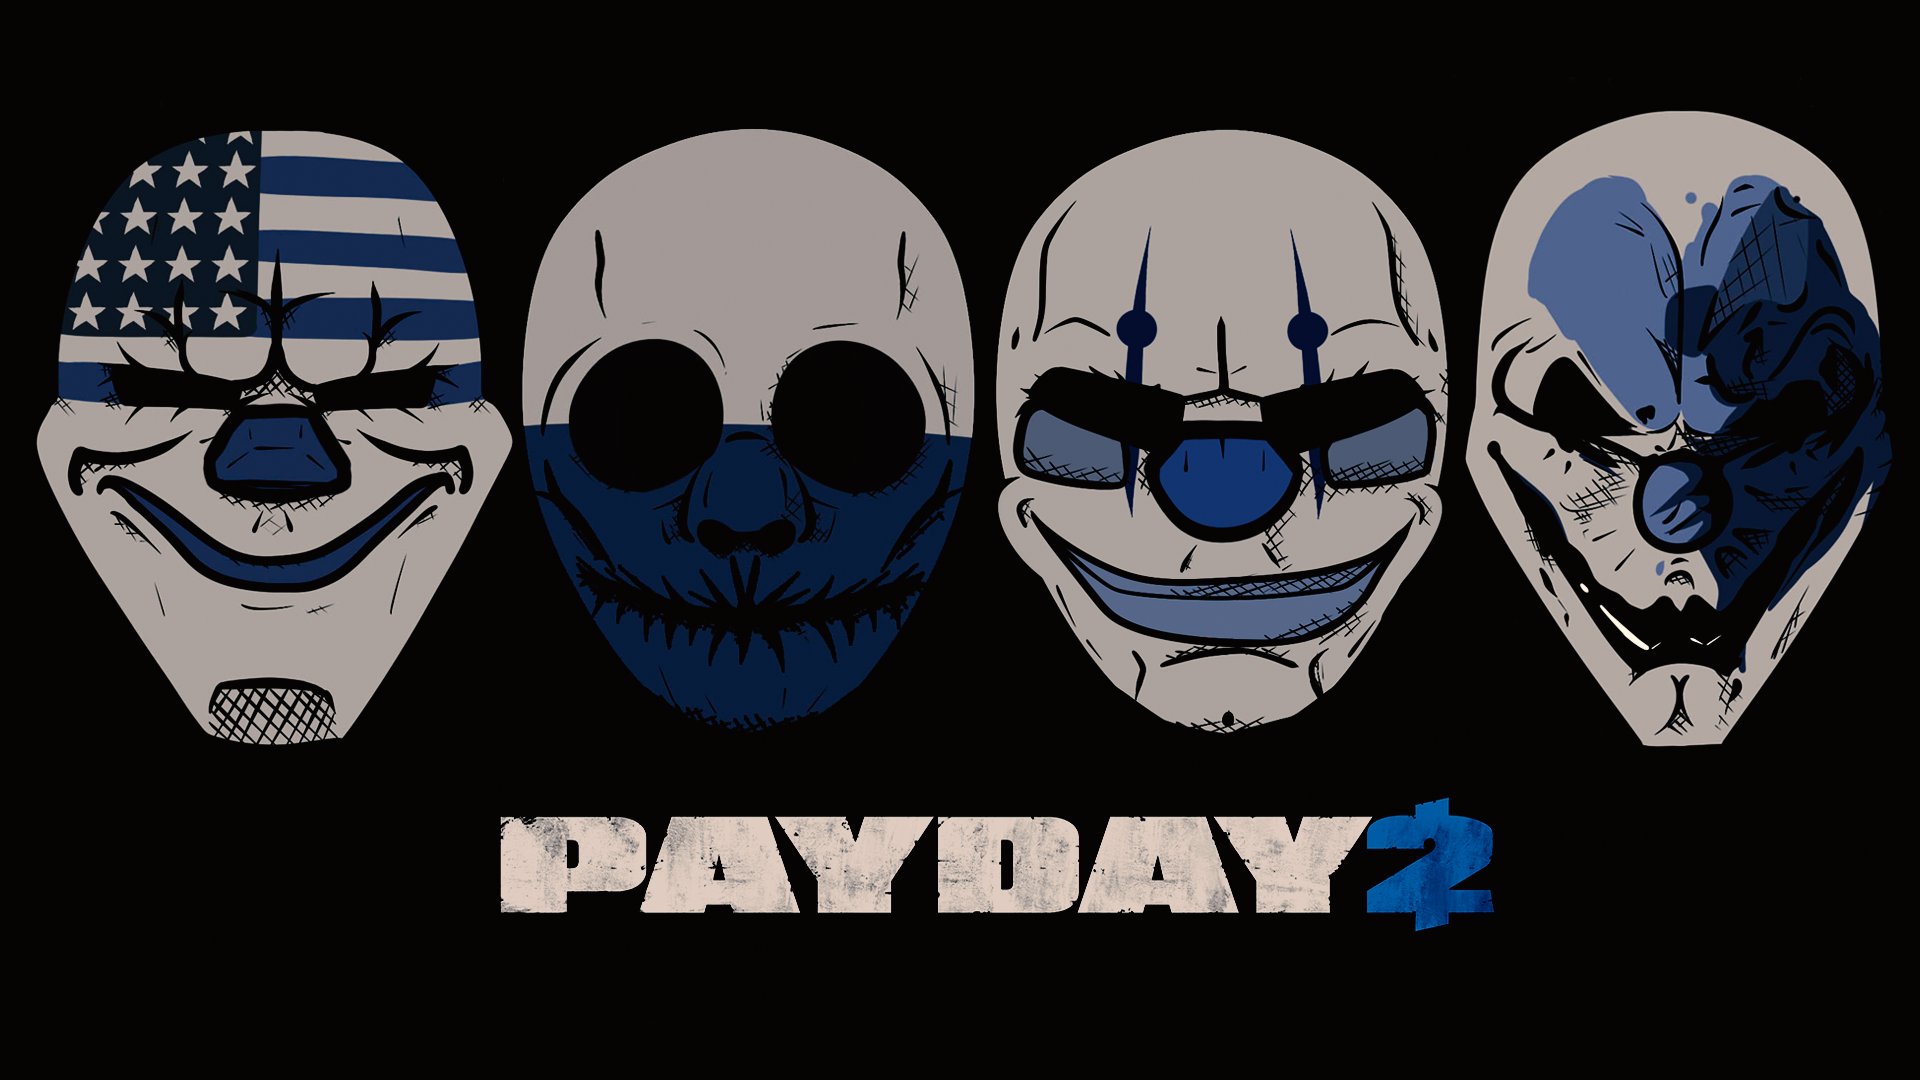 Payday 2 Wallpaper Wallpapers And Backgrounds